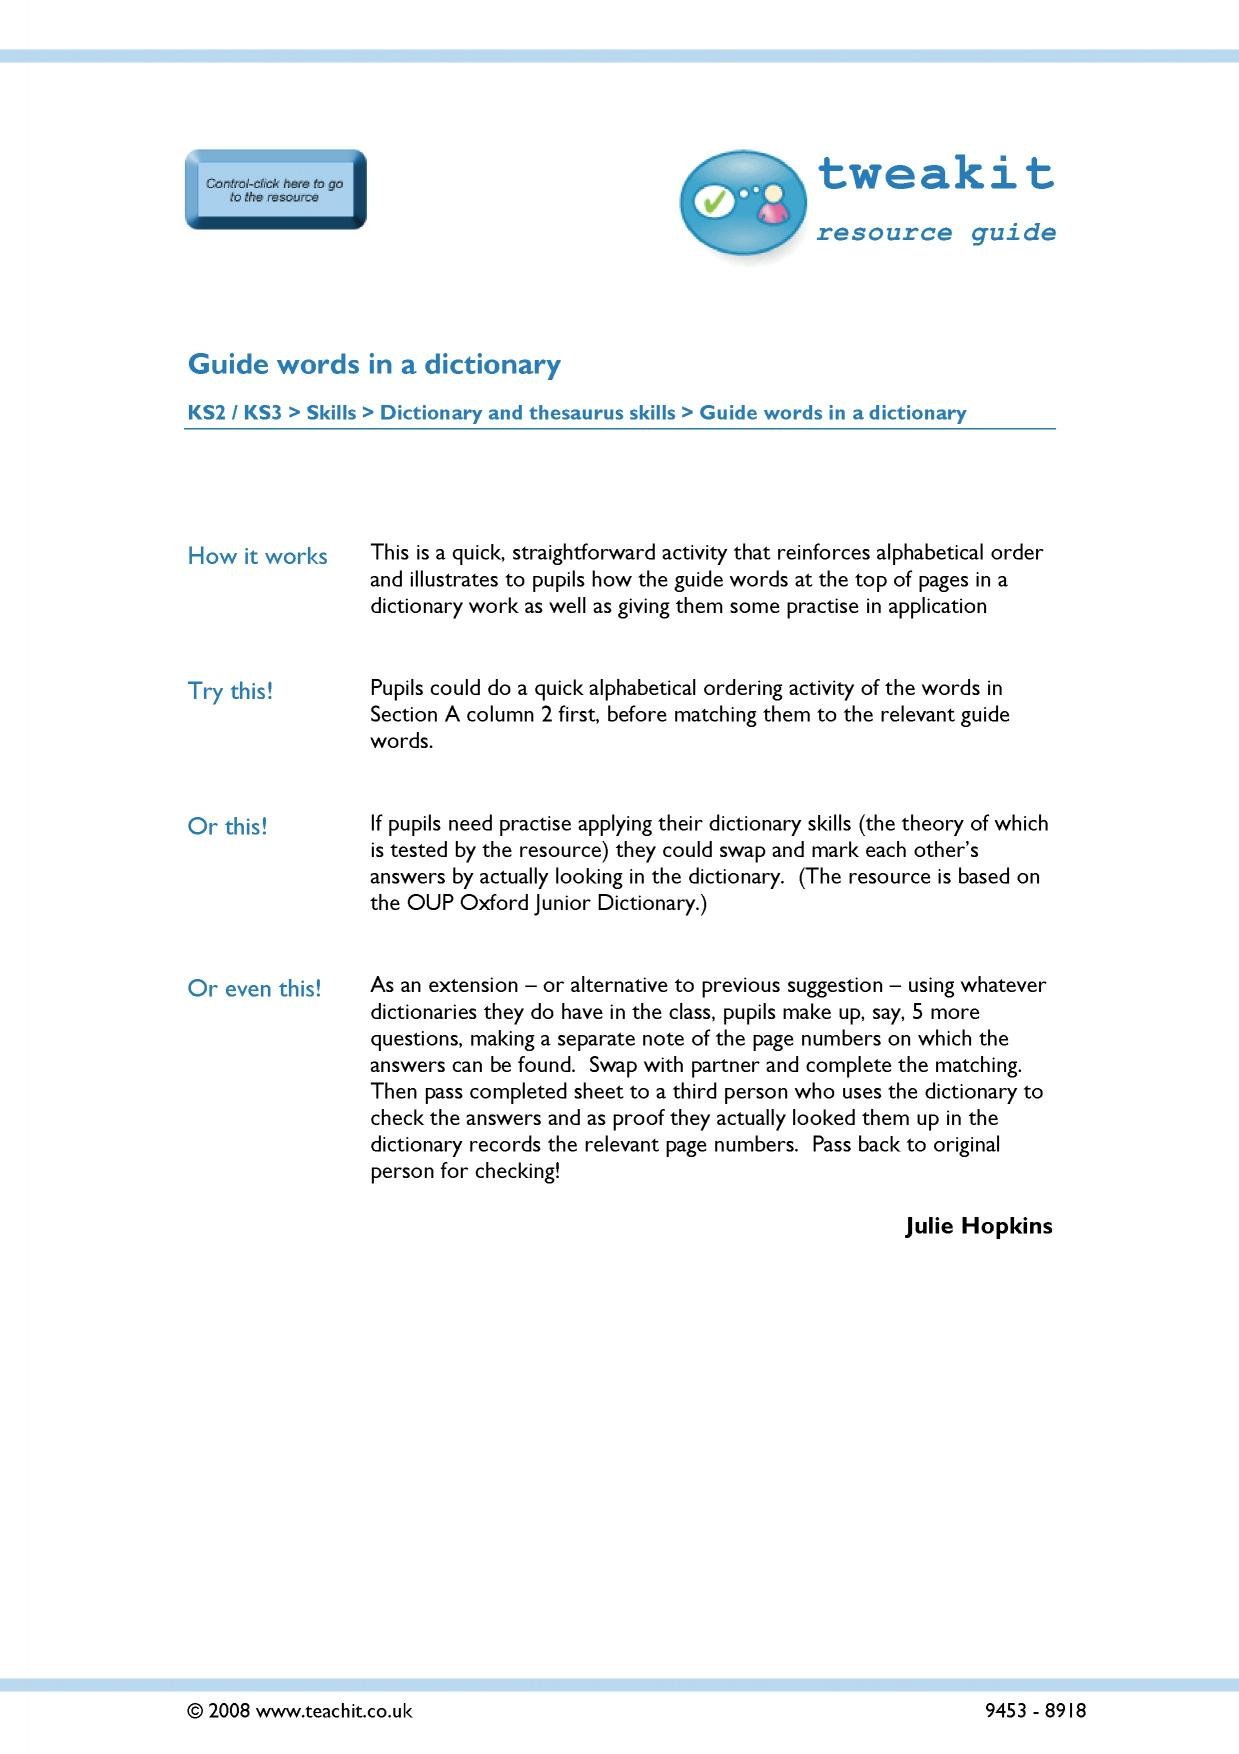 Reception, KS1 and KS2 vocabulary, punctuation and grammar resources